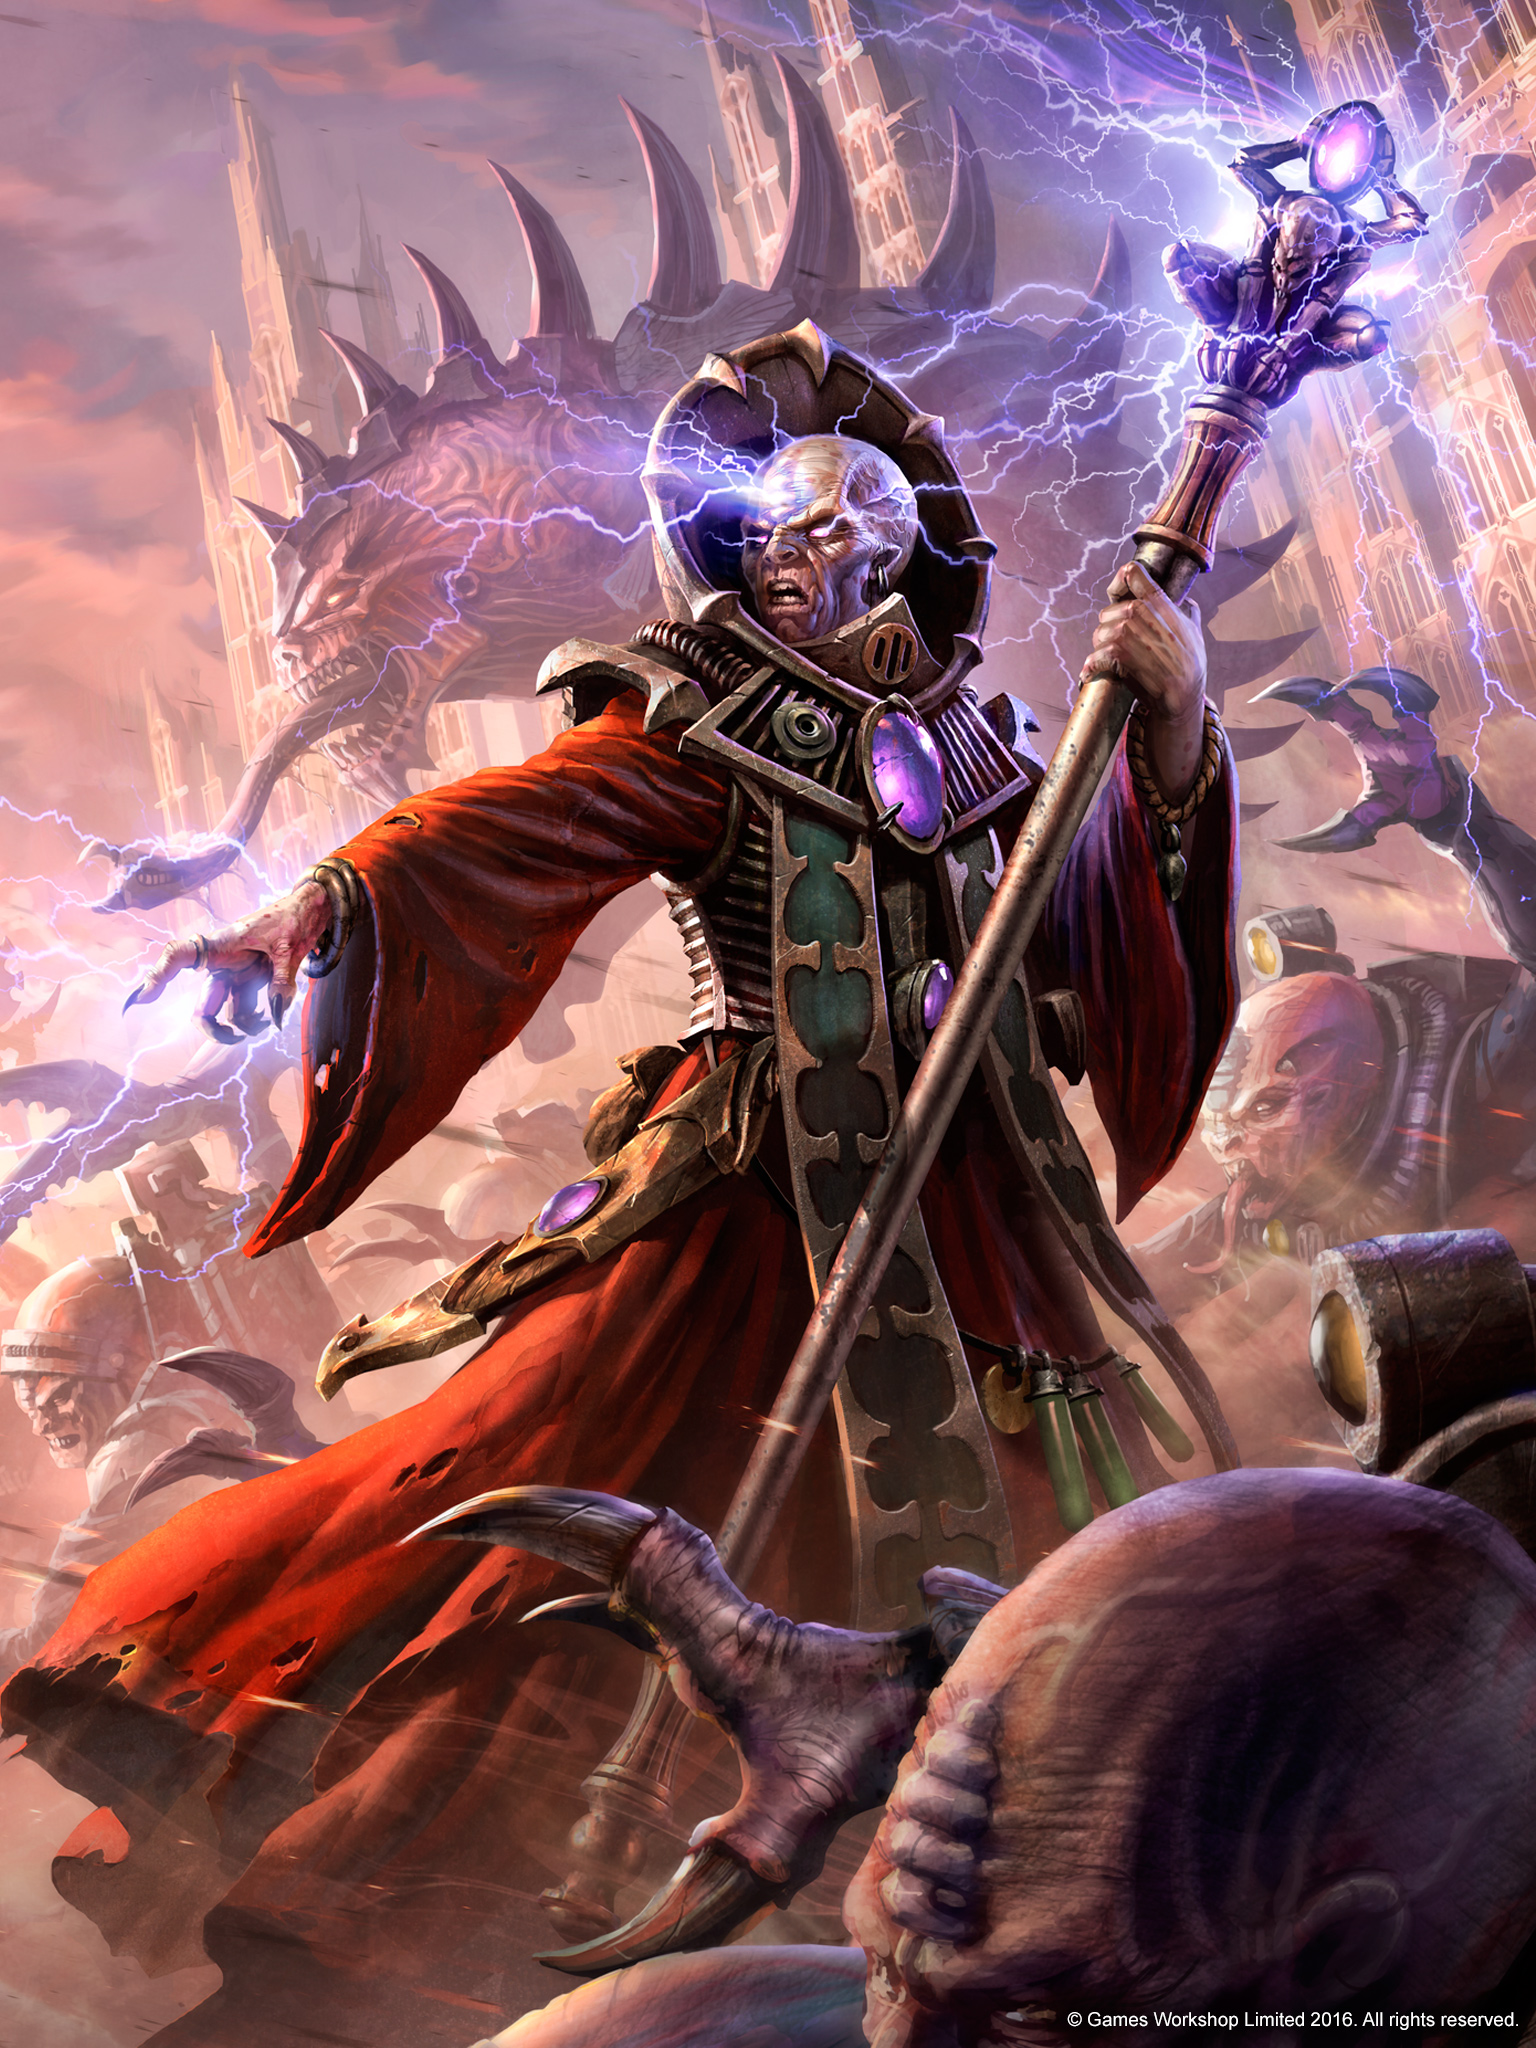 Genestealer cult warhammer 40k fandom powered by wikia a magus of a genestealer cult uses his psychic powers to direct his kin during a rebellion buycottarizona Choice Image